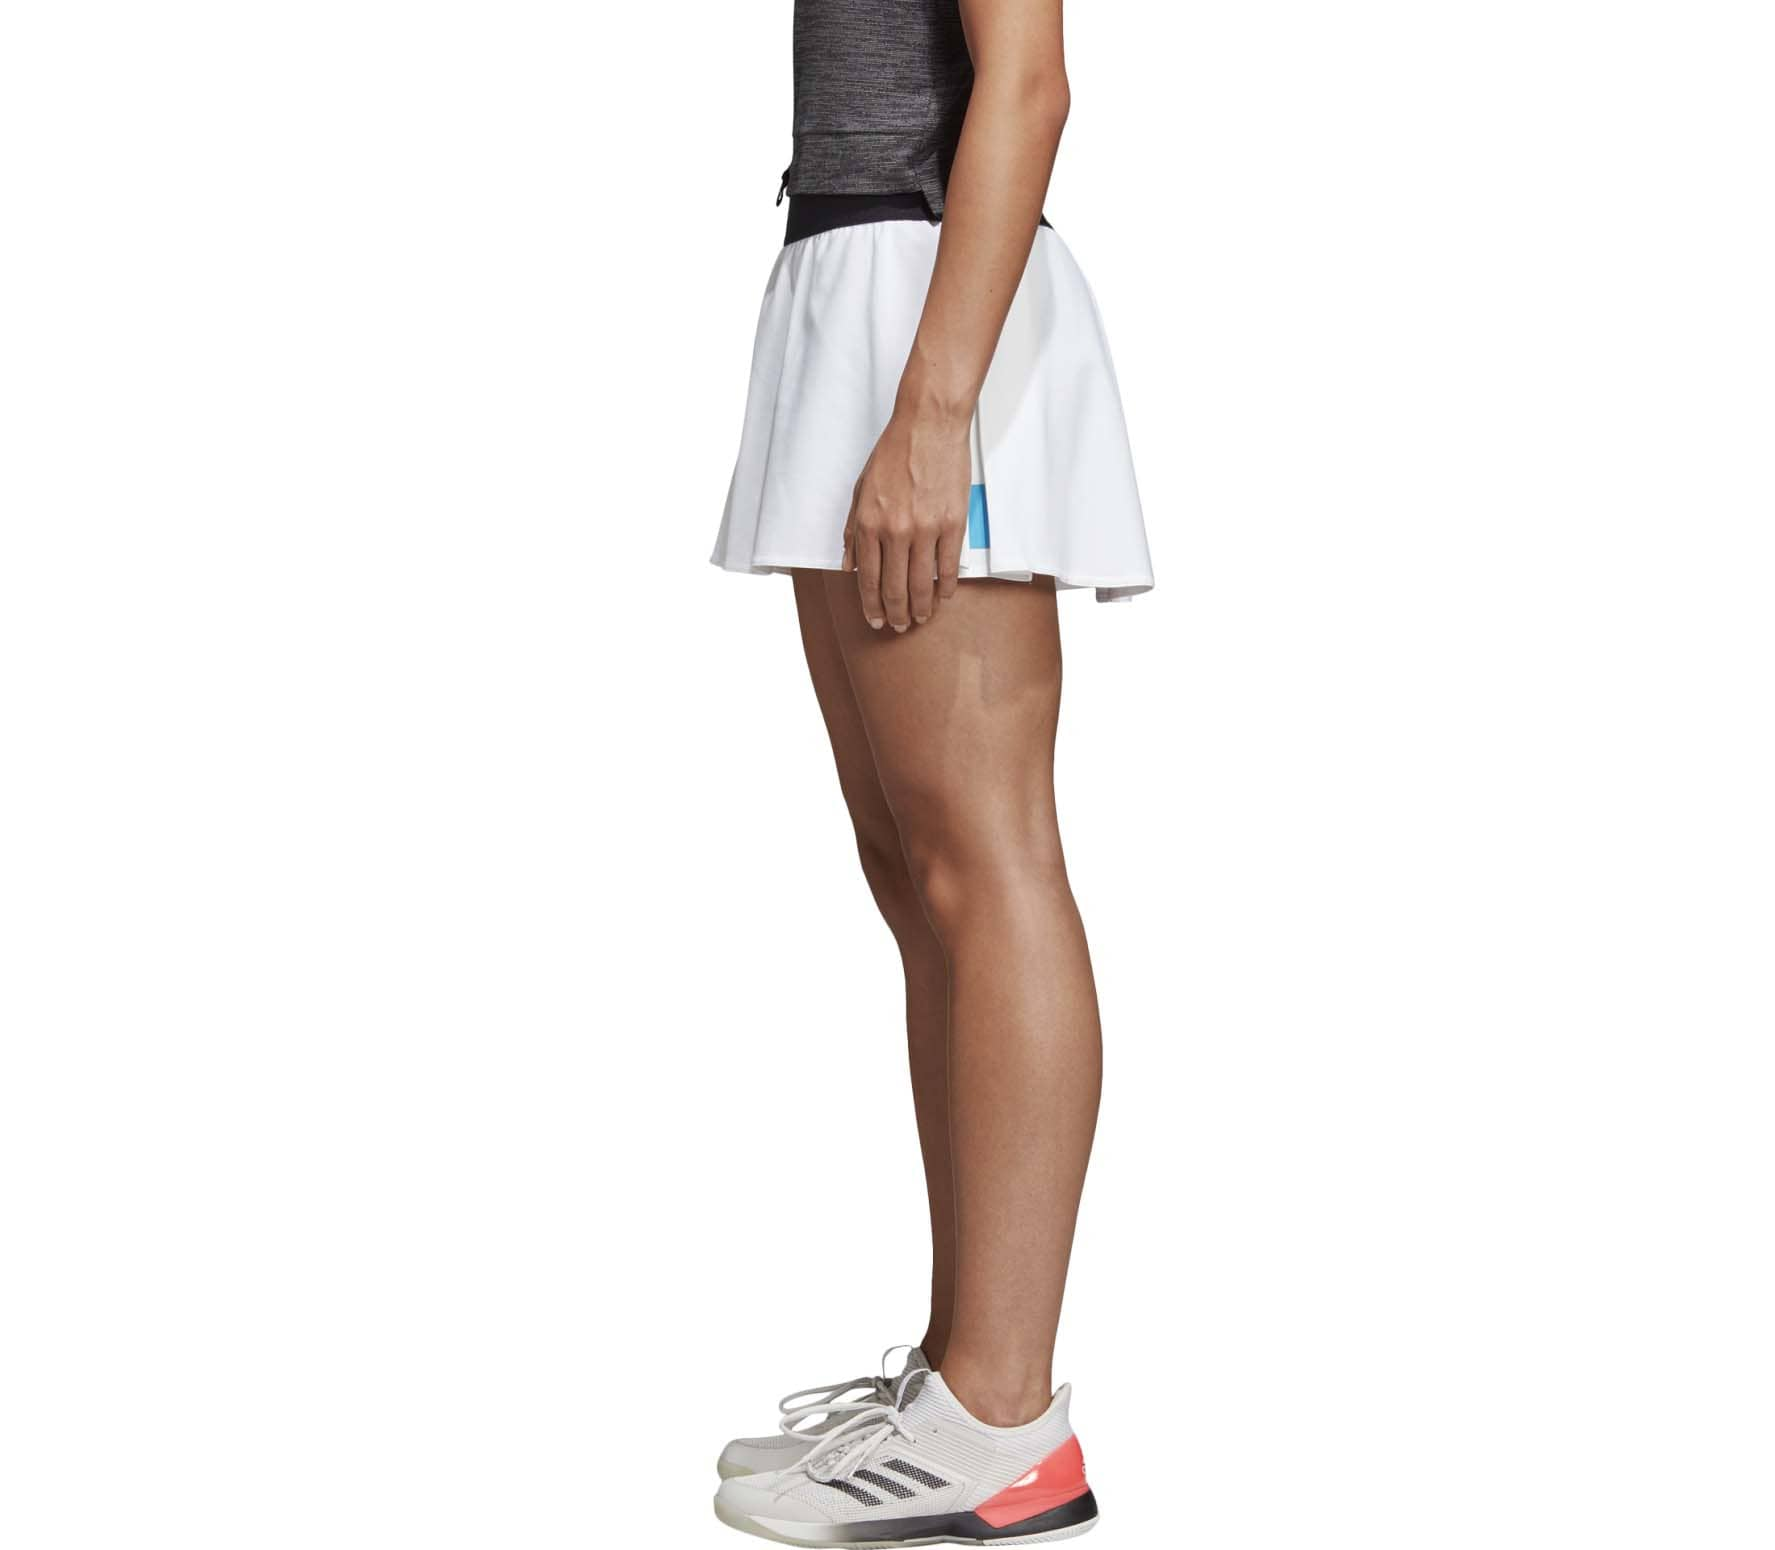 adidas Escouade women's tennis skirt Damen Tennisrock weiß